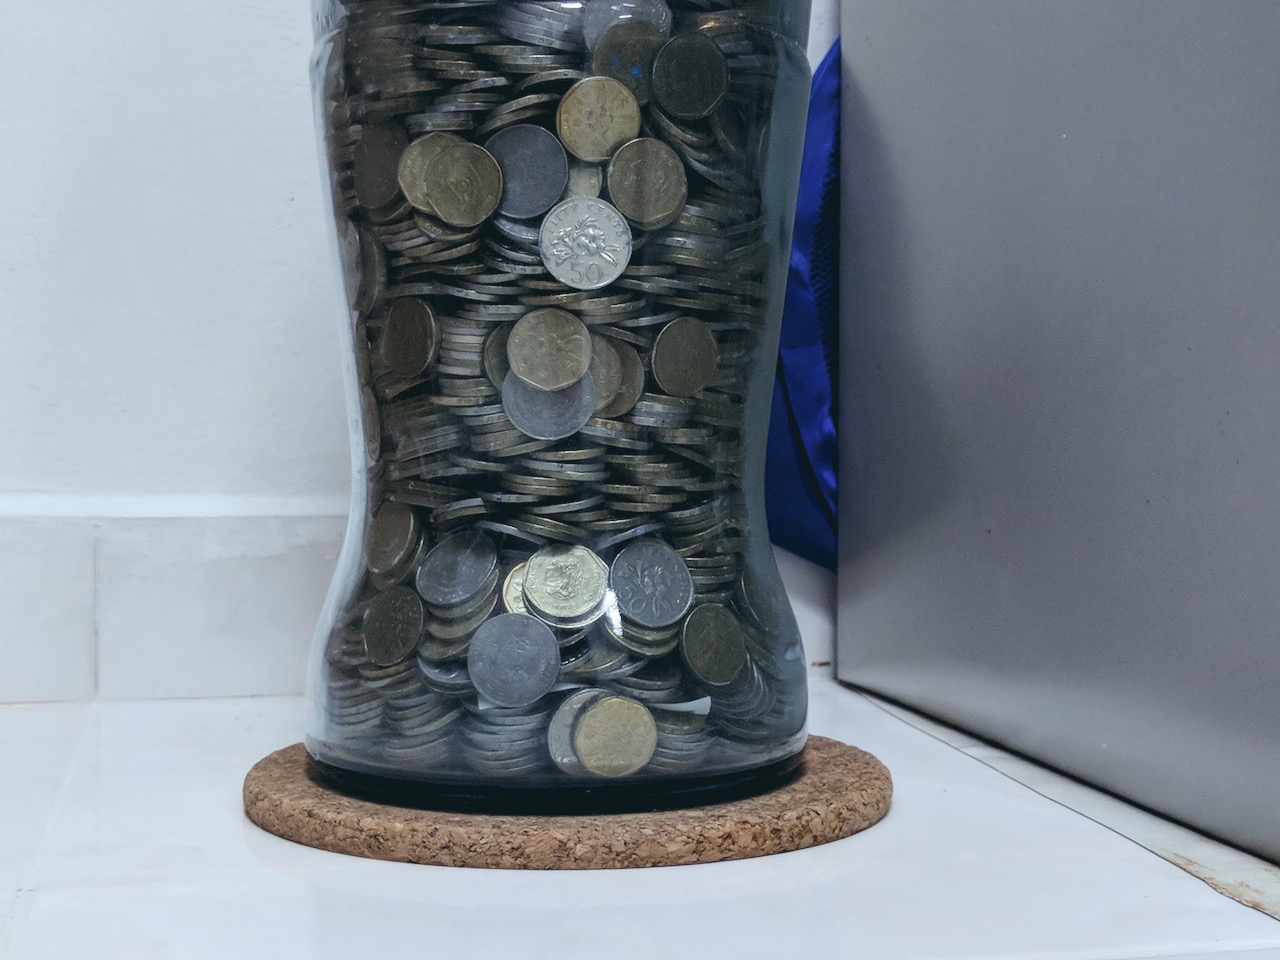 My Parents Used to Save Coins in a Glass Bottle. It Taught Me Everything About Life